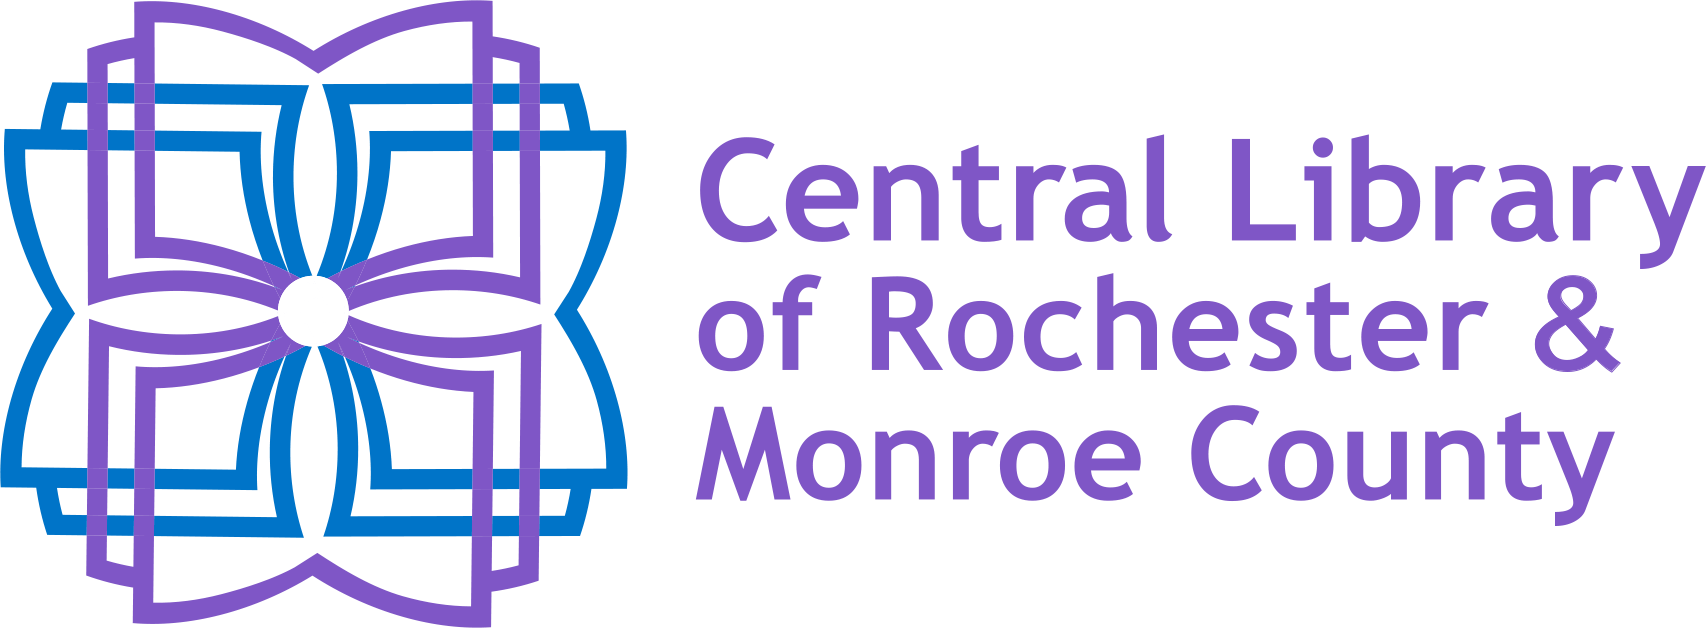 Central Library of Rochester & Monroe County